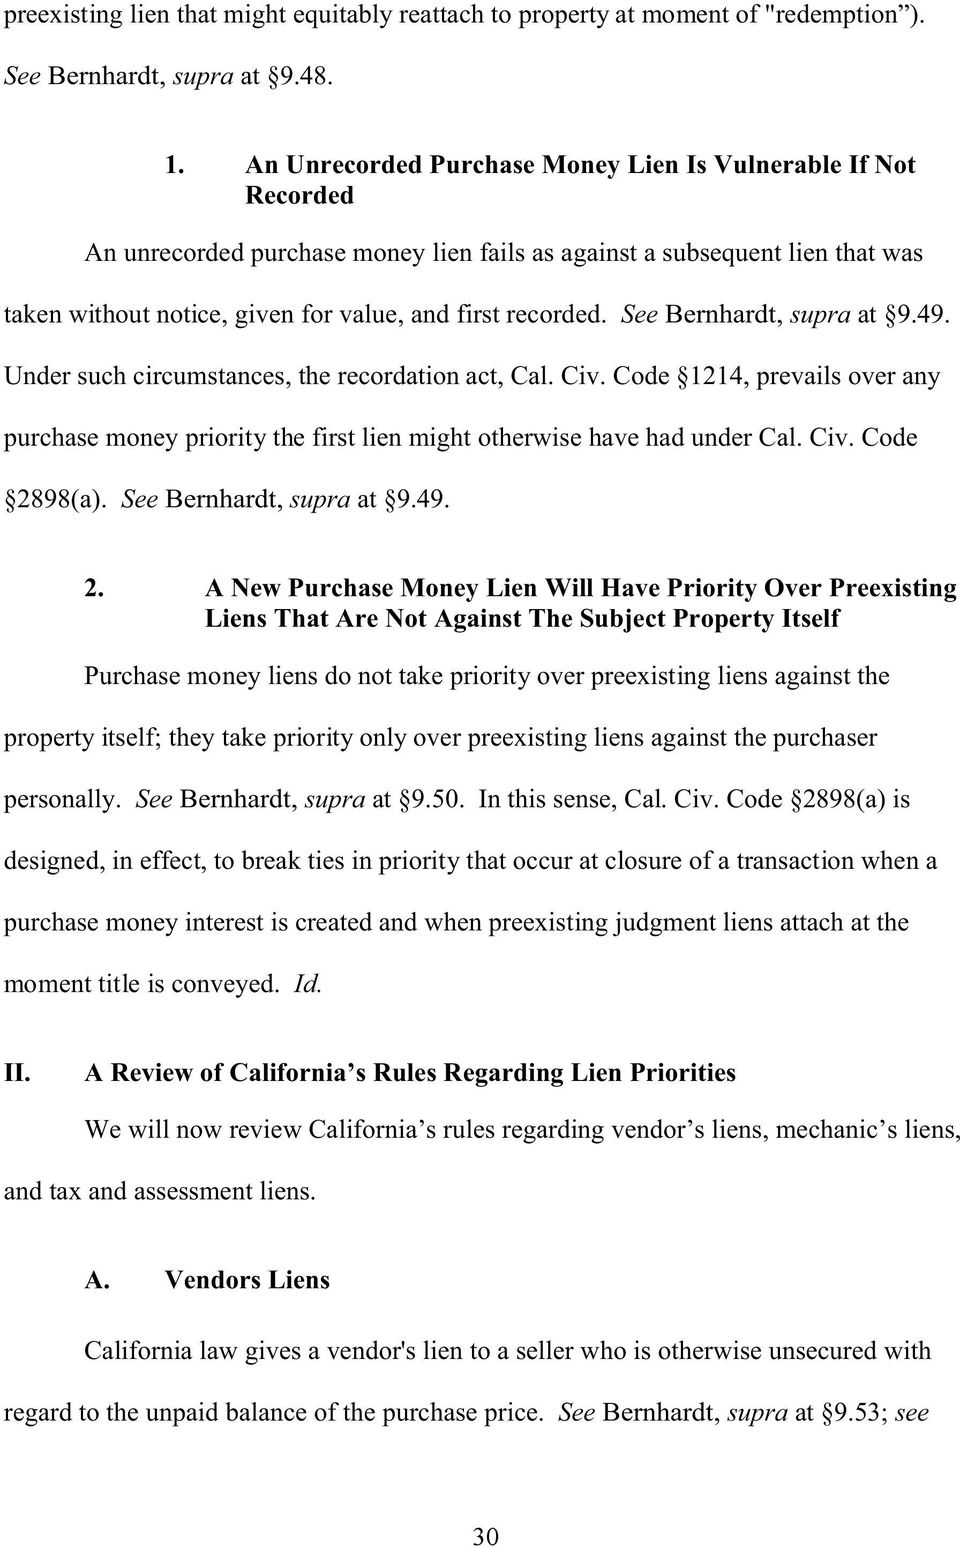 See Bernhardt, supra at 9.49. Under such circumstances, the recordation act, Cal. Civ. Code 1214, prevails over any purchase money priority the first lien might otherwise have had under Cal. Civ. Code 2898(a).